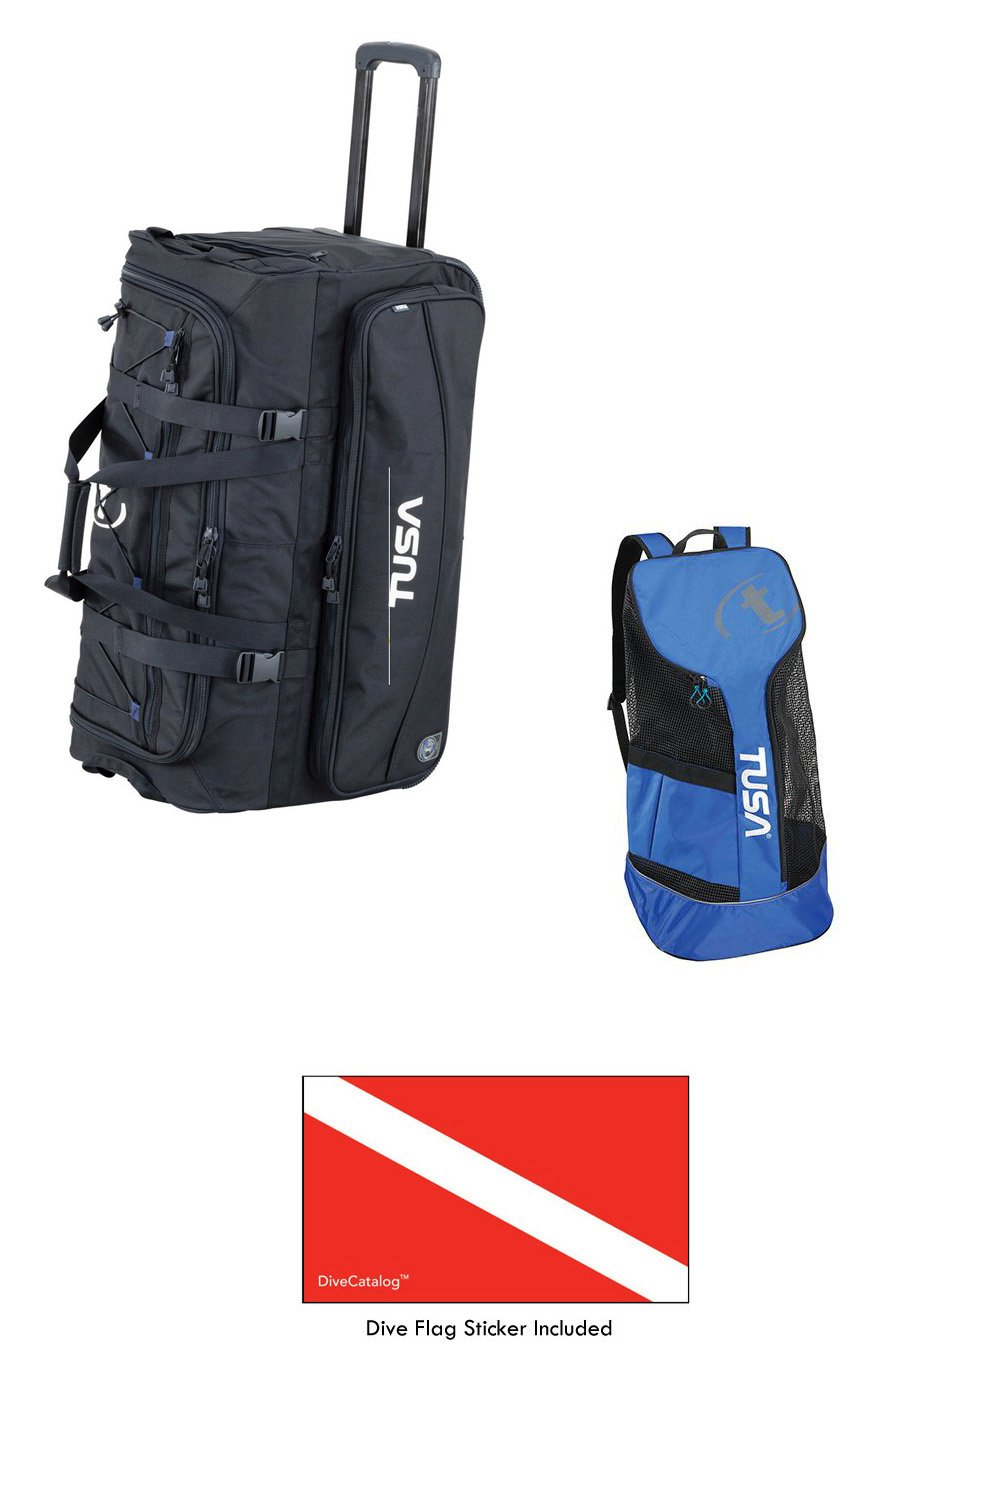 TUSA Dive Gear Roller Duffle Bag in Black w Mesh Backpack Cobalt Blue CBL & DiveCatalog's Sticker